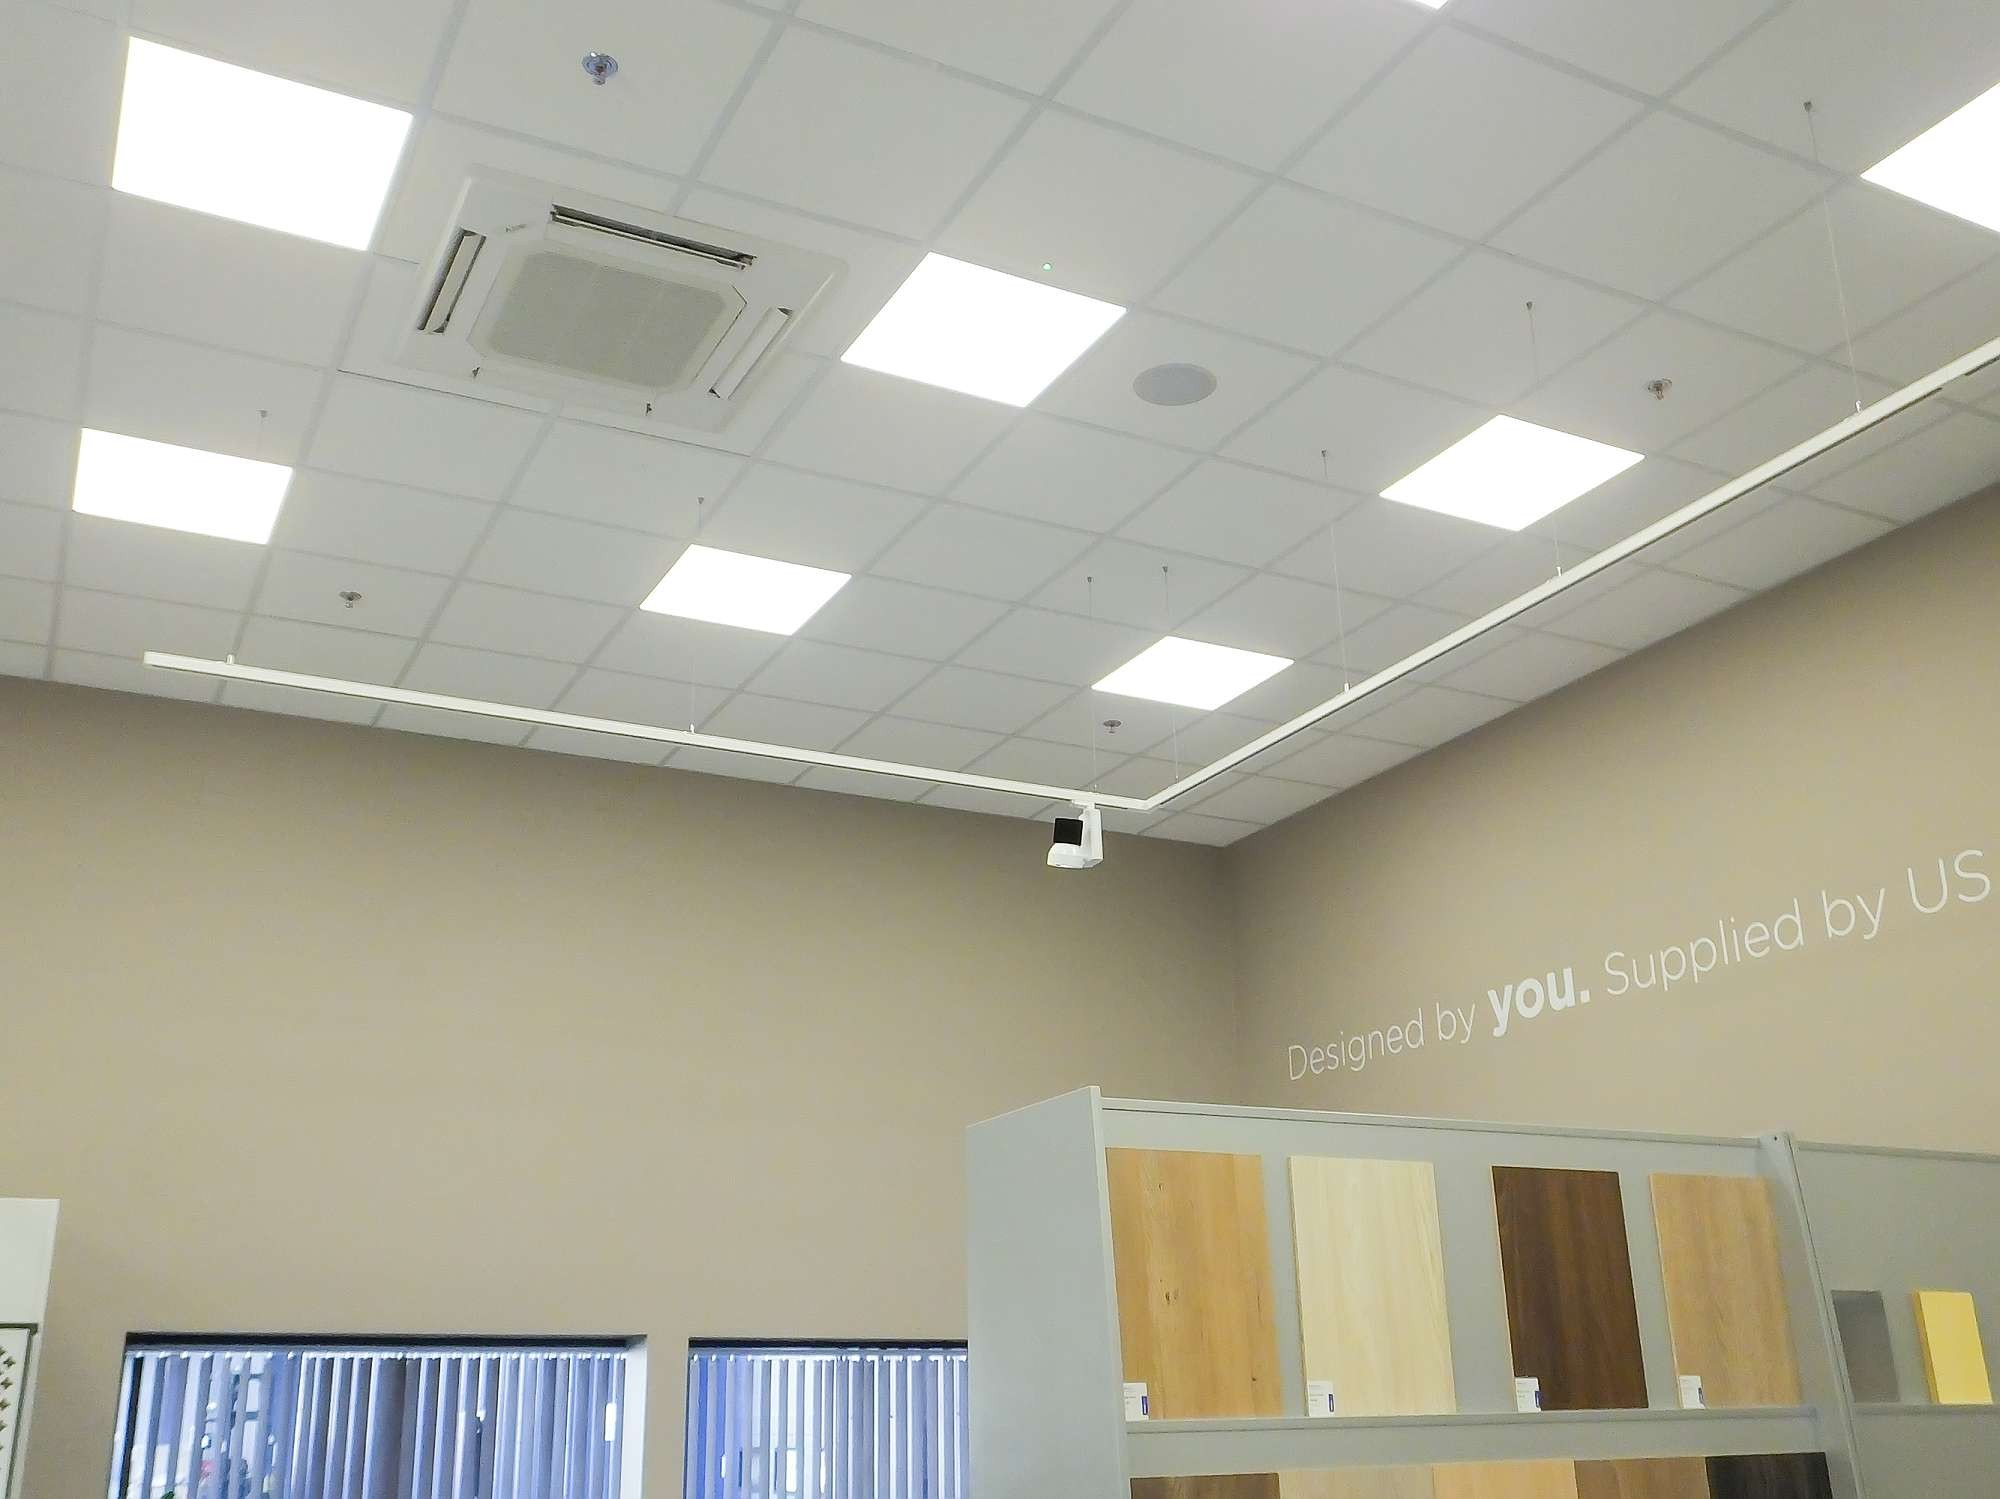 lowered suspended co smsender contractor installation ceiling ceilings tulum